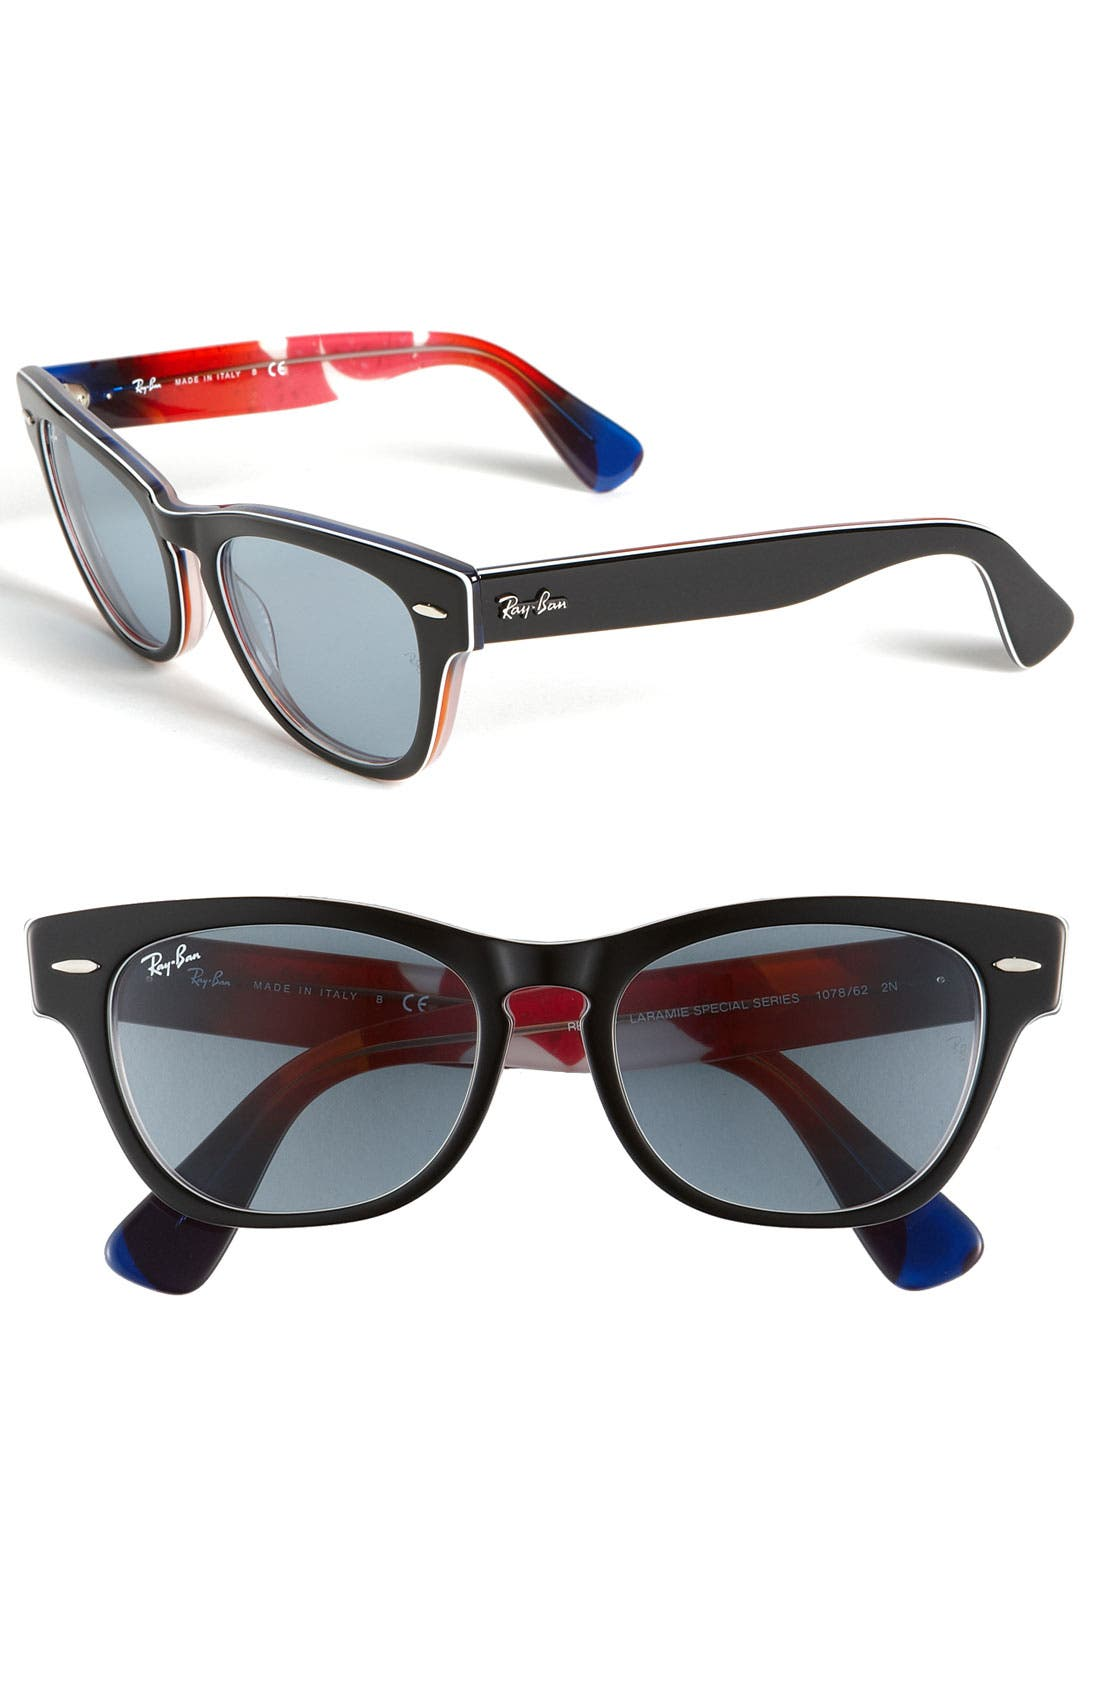 Alternate Image 1 Selected - Ray-Ban 'Legend Collection Wayfarer' Sunglasses